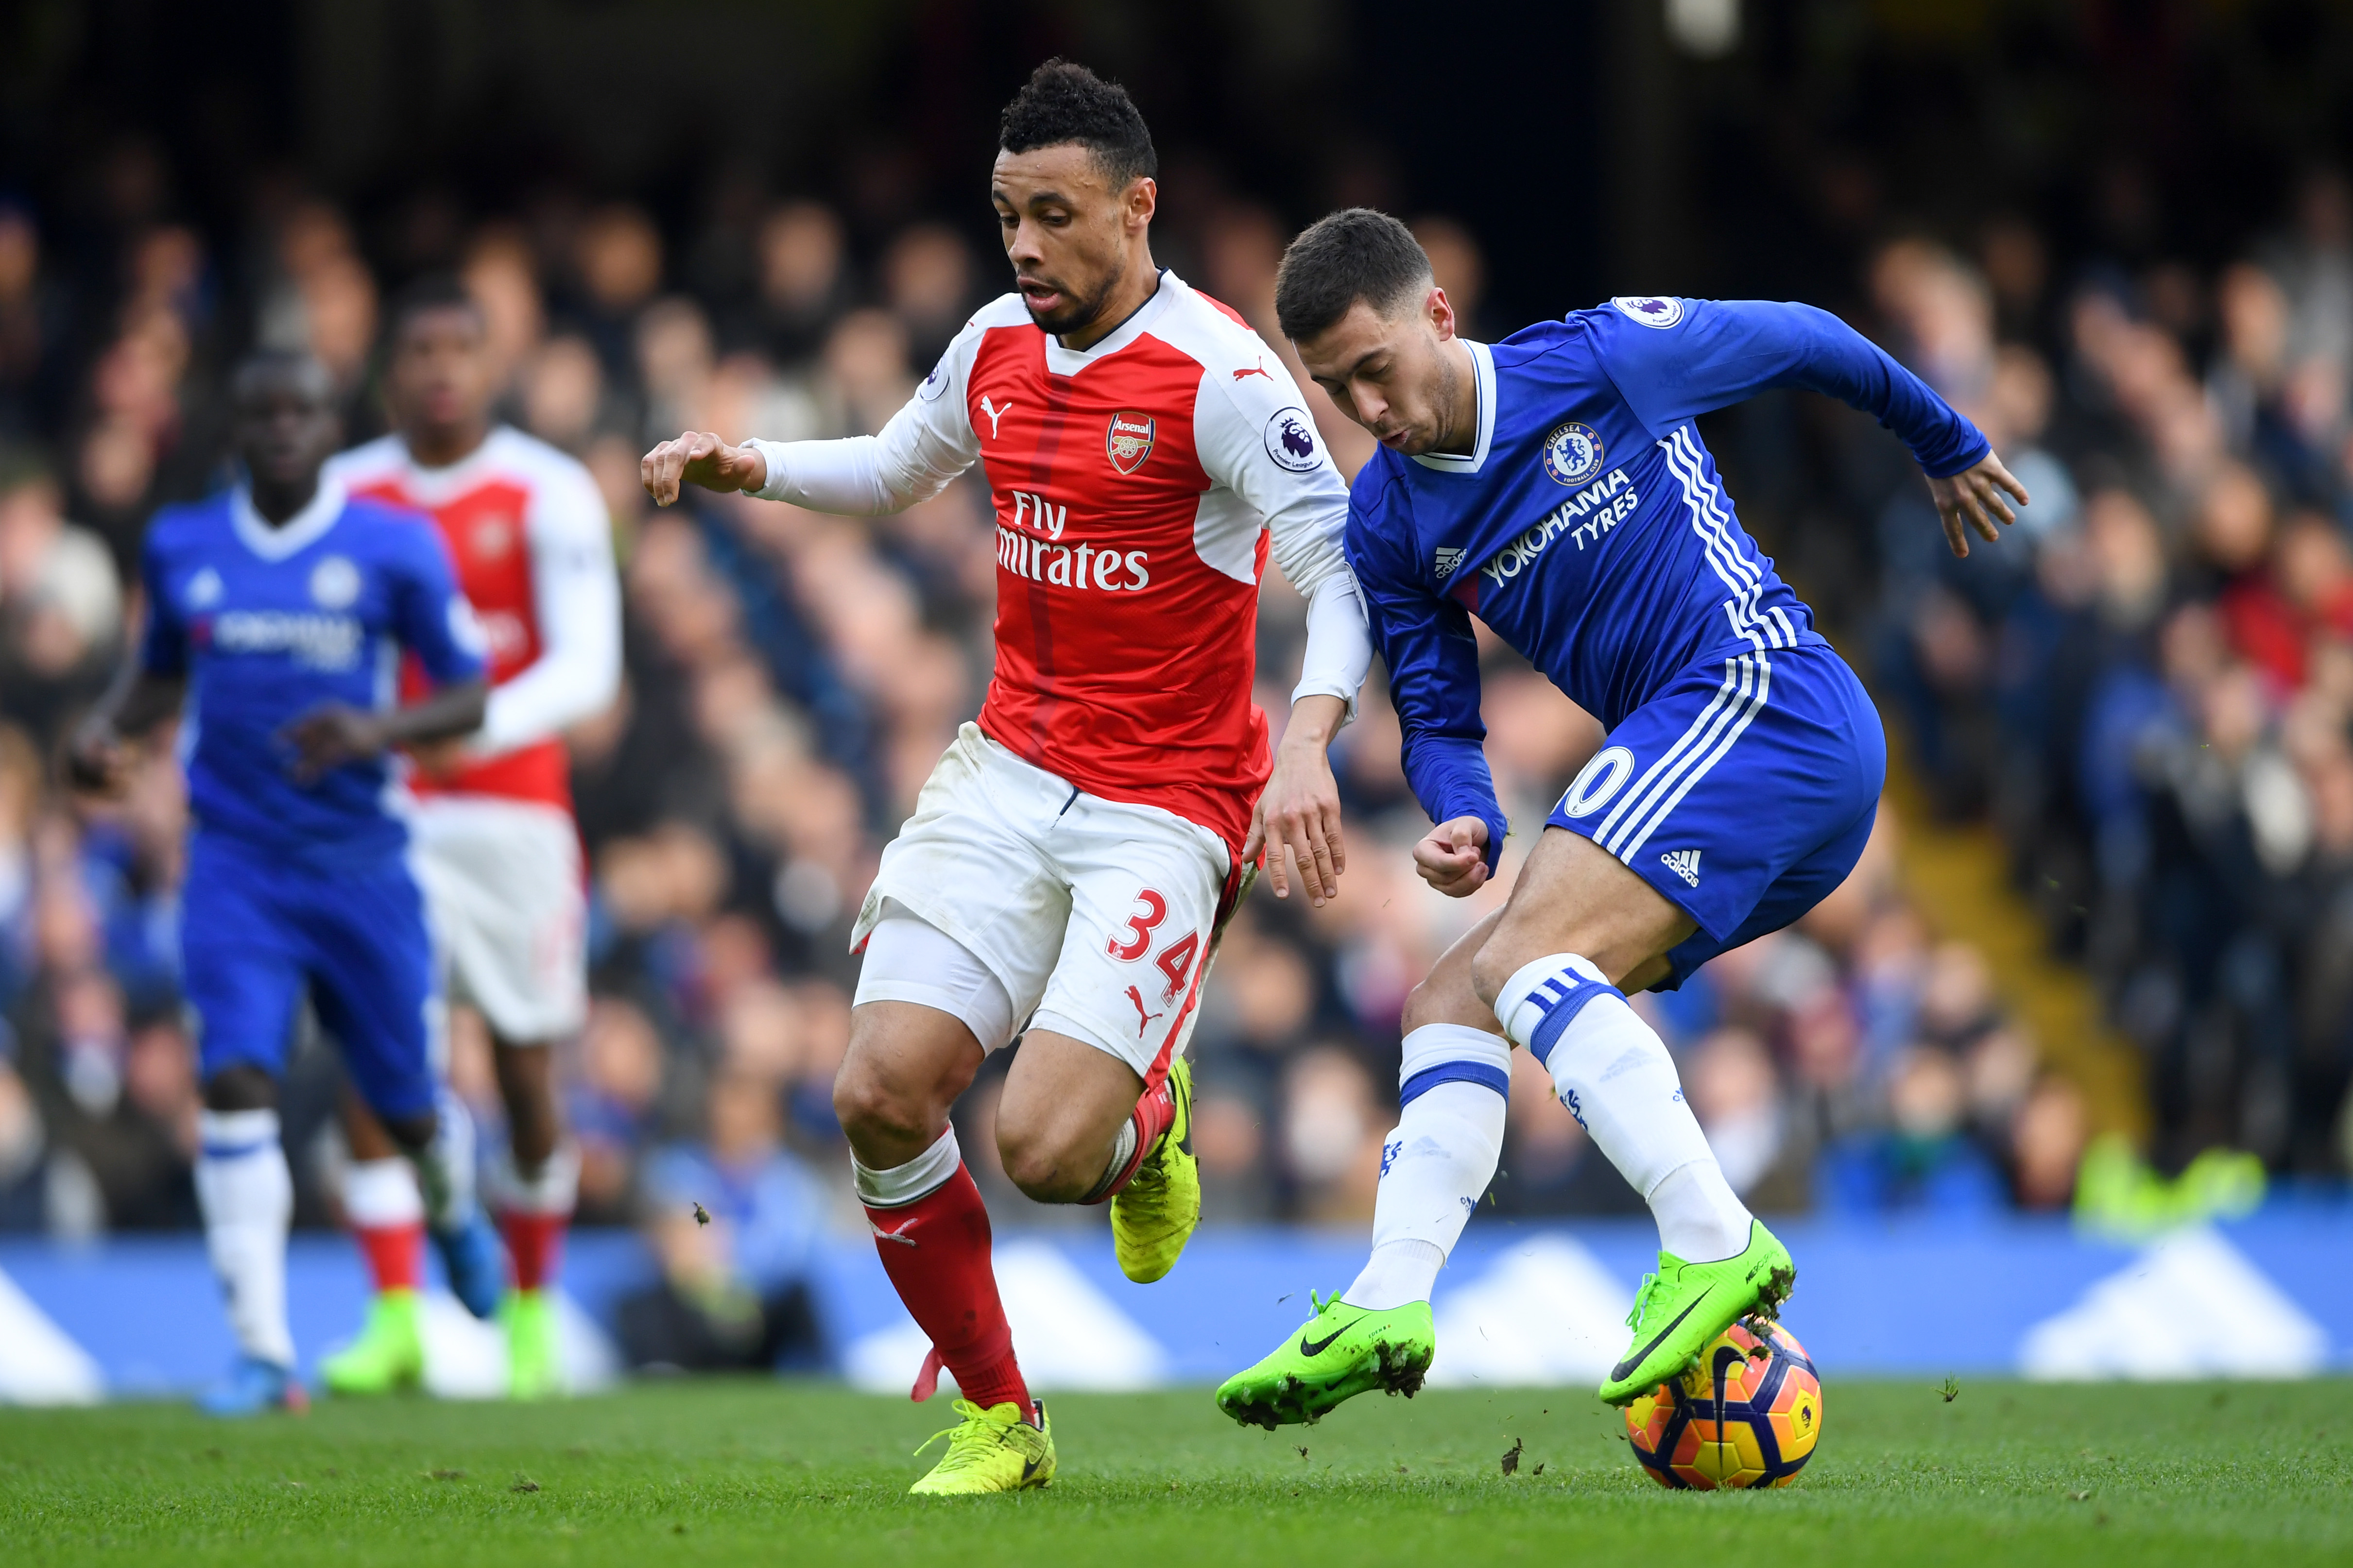 Odd for Chelsea to get another red card against Arsenal - Conte